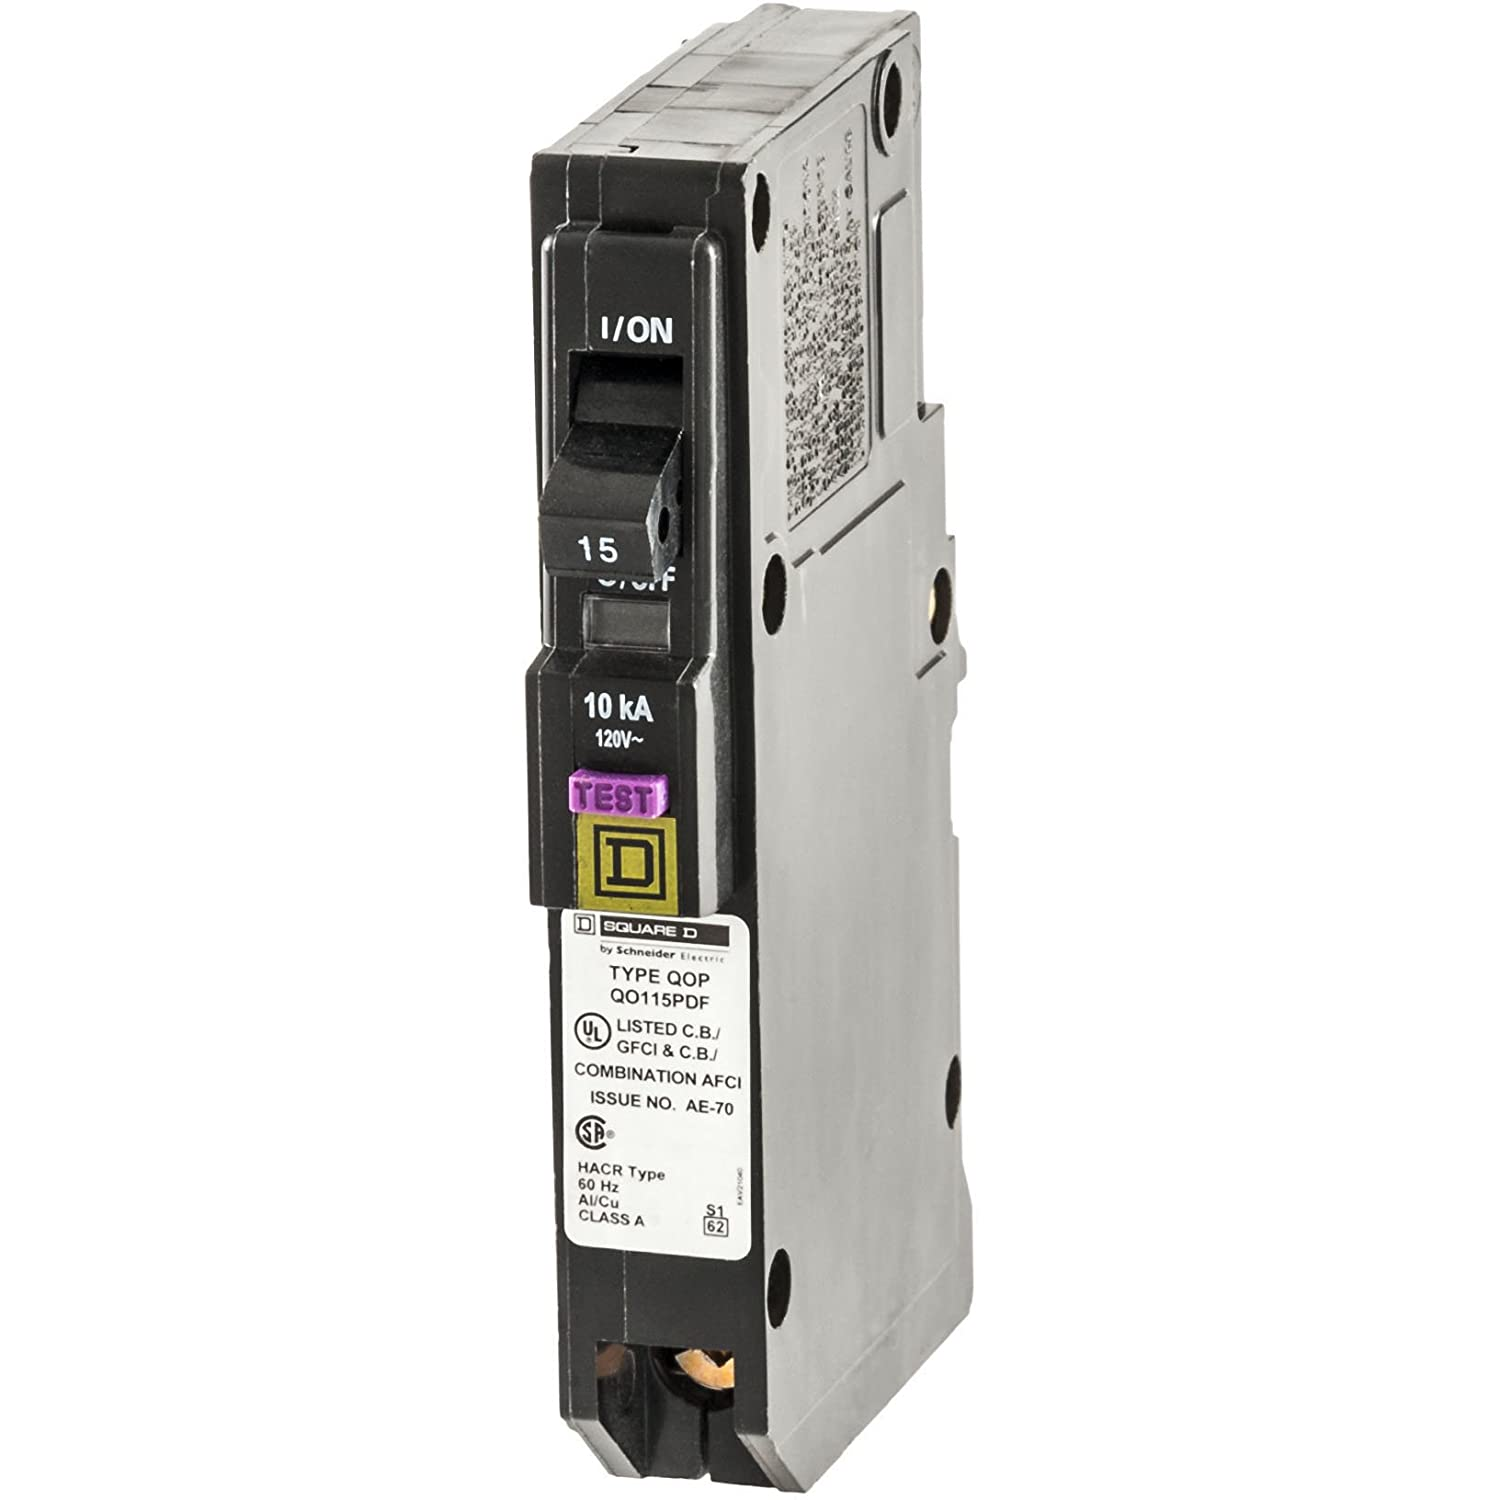 Ground Fault Circuit Interrupters Square D 50 Amp Gfci Breaker Wiring By Schneider Electric Qo Qo115pdf Plug In Mount 15 Single Pole